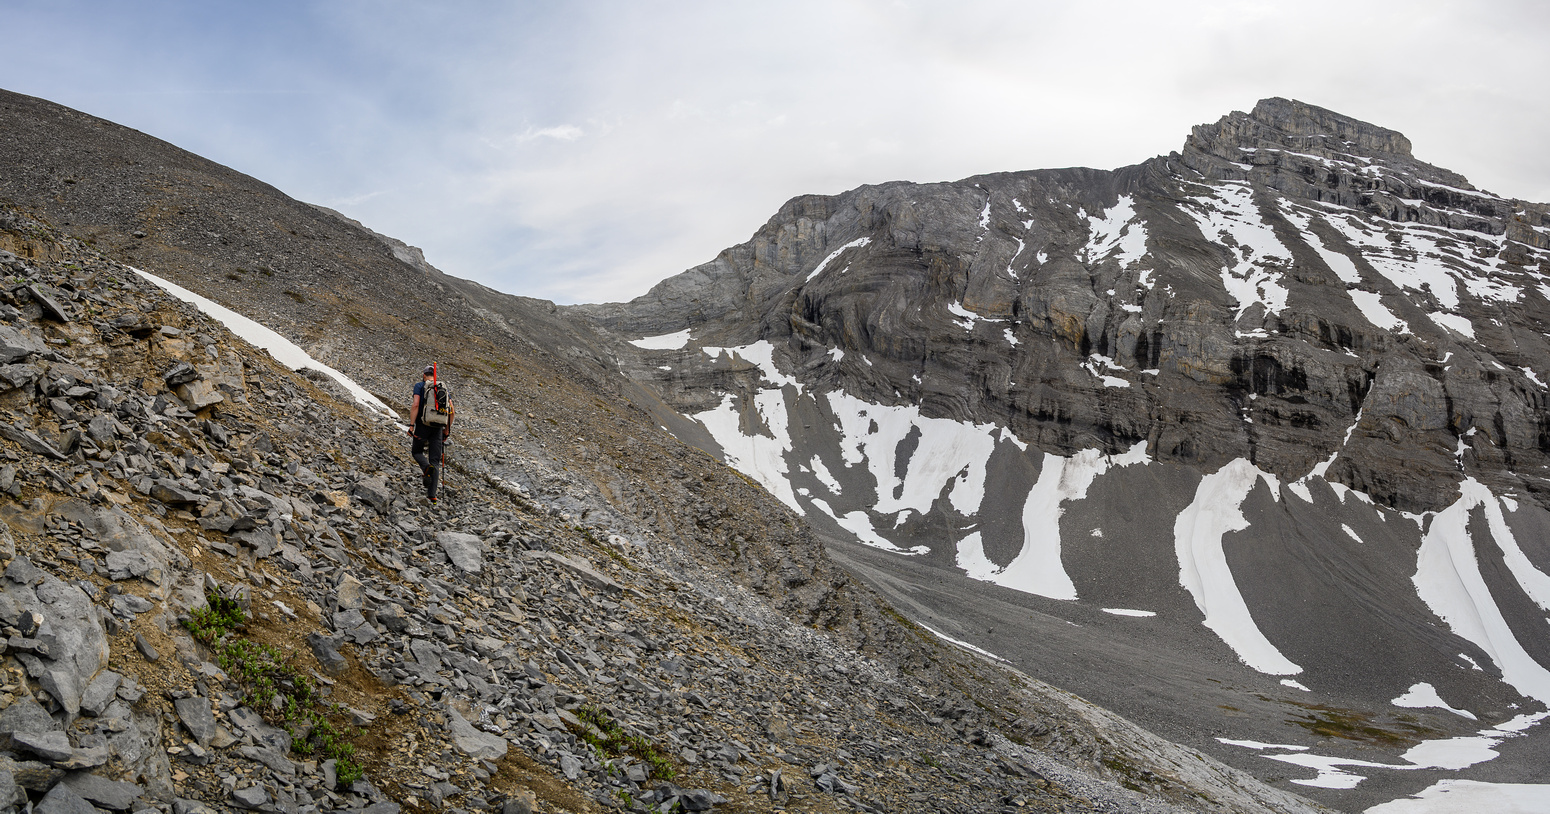 Hiking up the scree bench to the SE ridge. Solstice Peak at right.